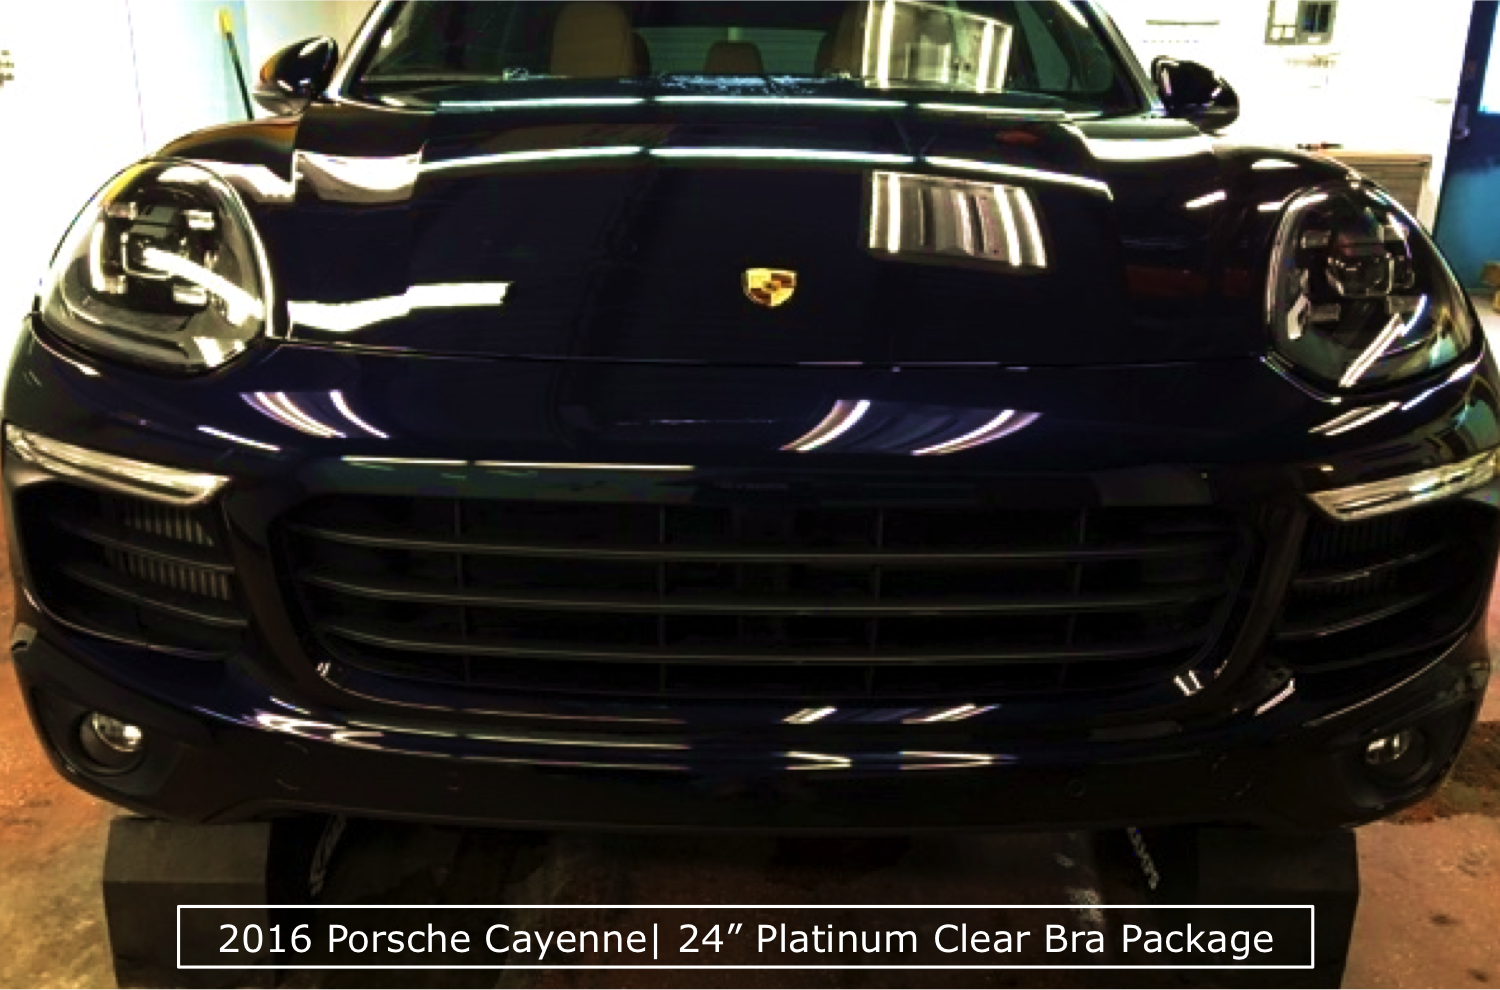 Platinum Clear Bra Package on a 2016 Porsche Cayenne